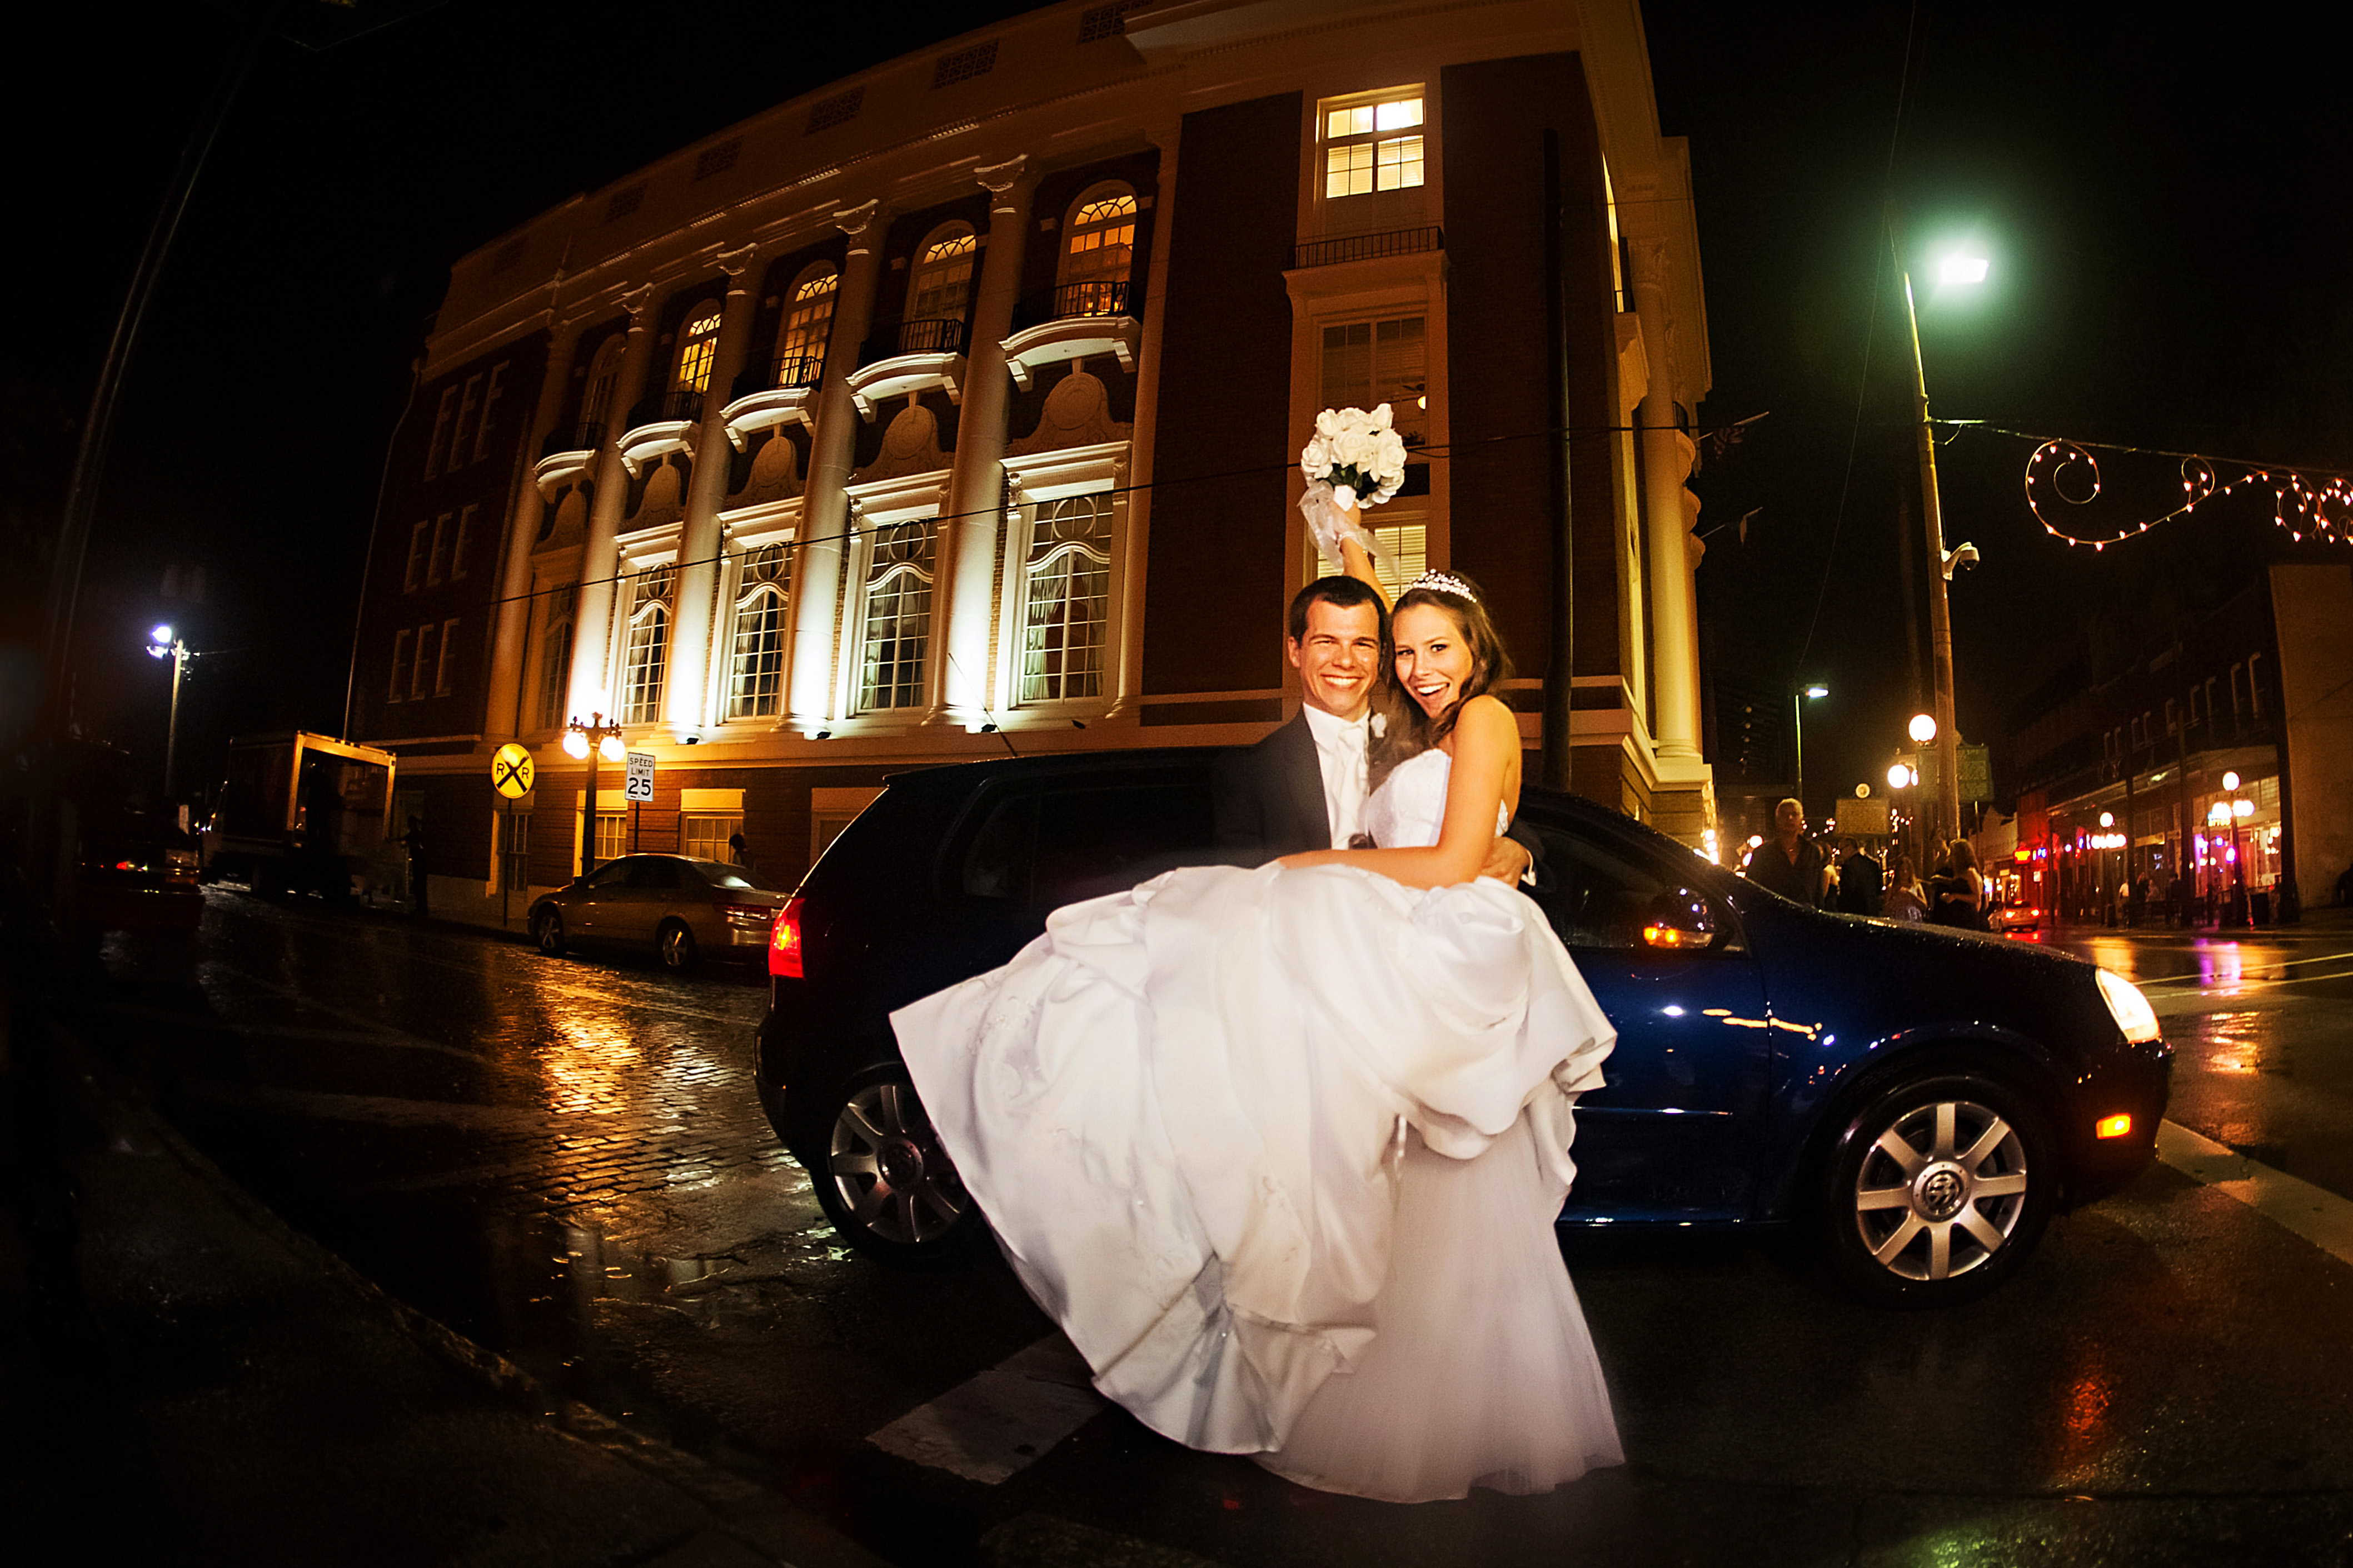 5 wedding venues in tampa fl to visit before you choose your 5 wedding venues in tampa fl to visit before you choose your wedding style the celebration society junglespirit Images